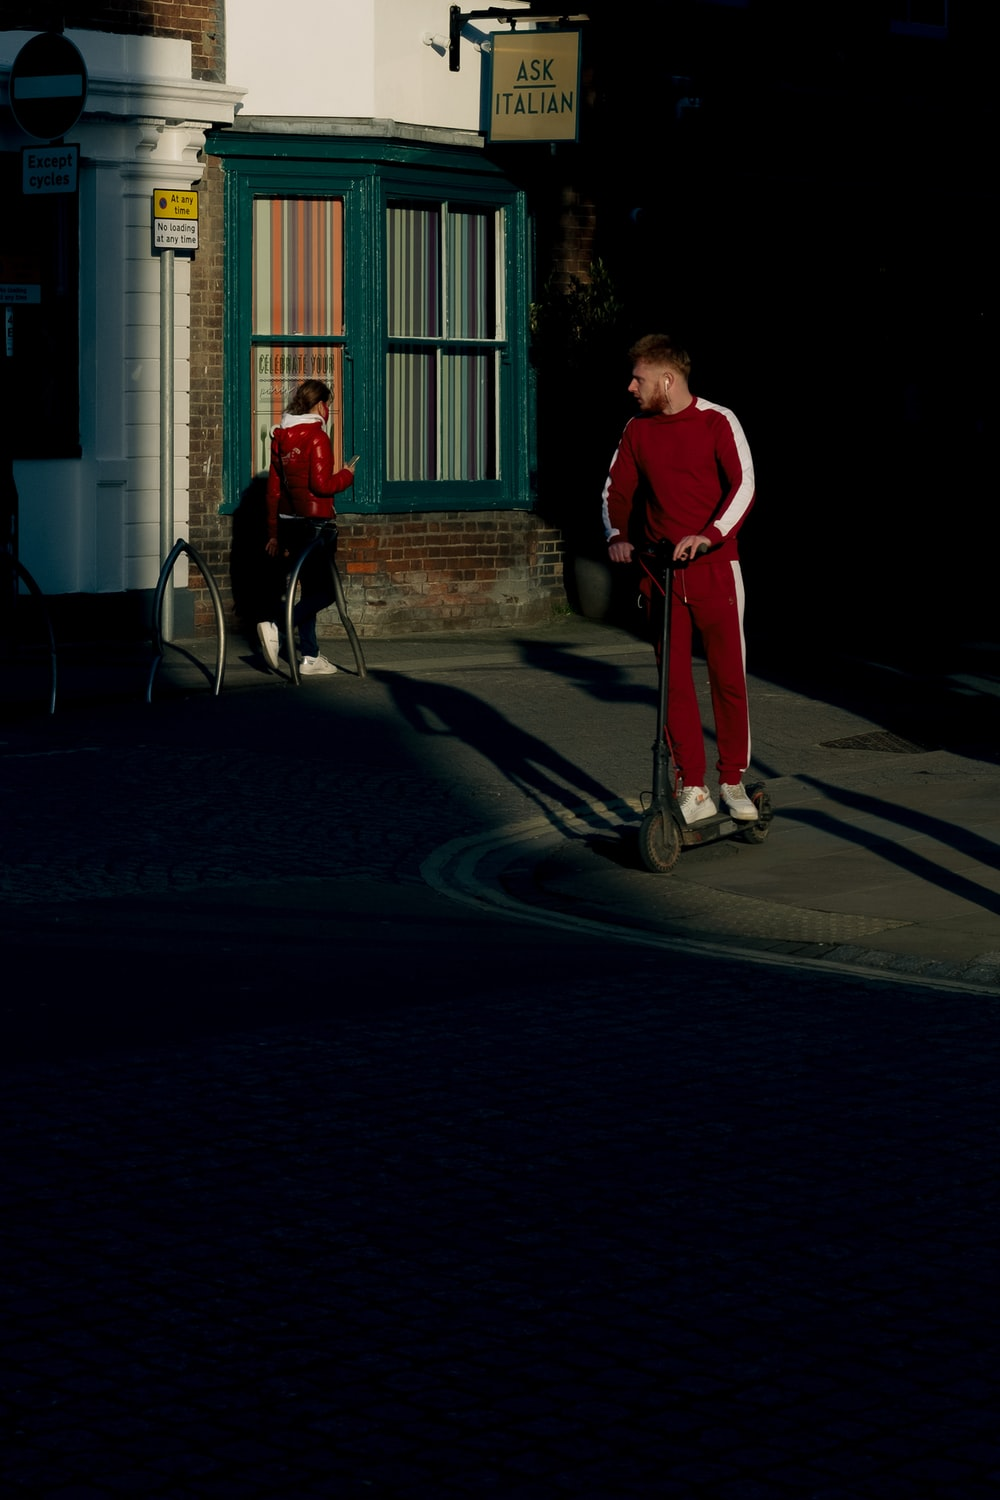 man in red shirt and pants walking with dog during daytime